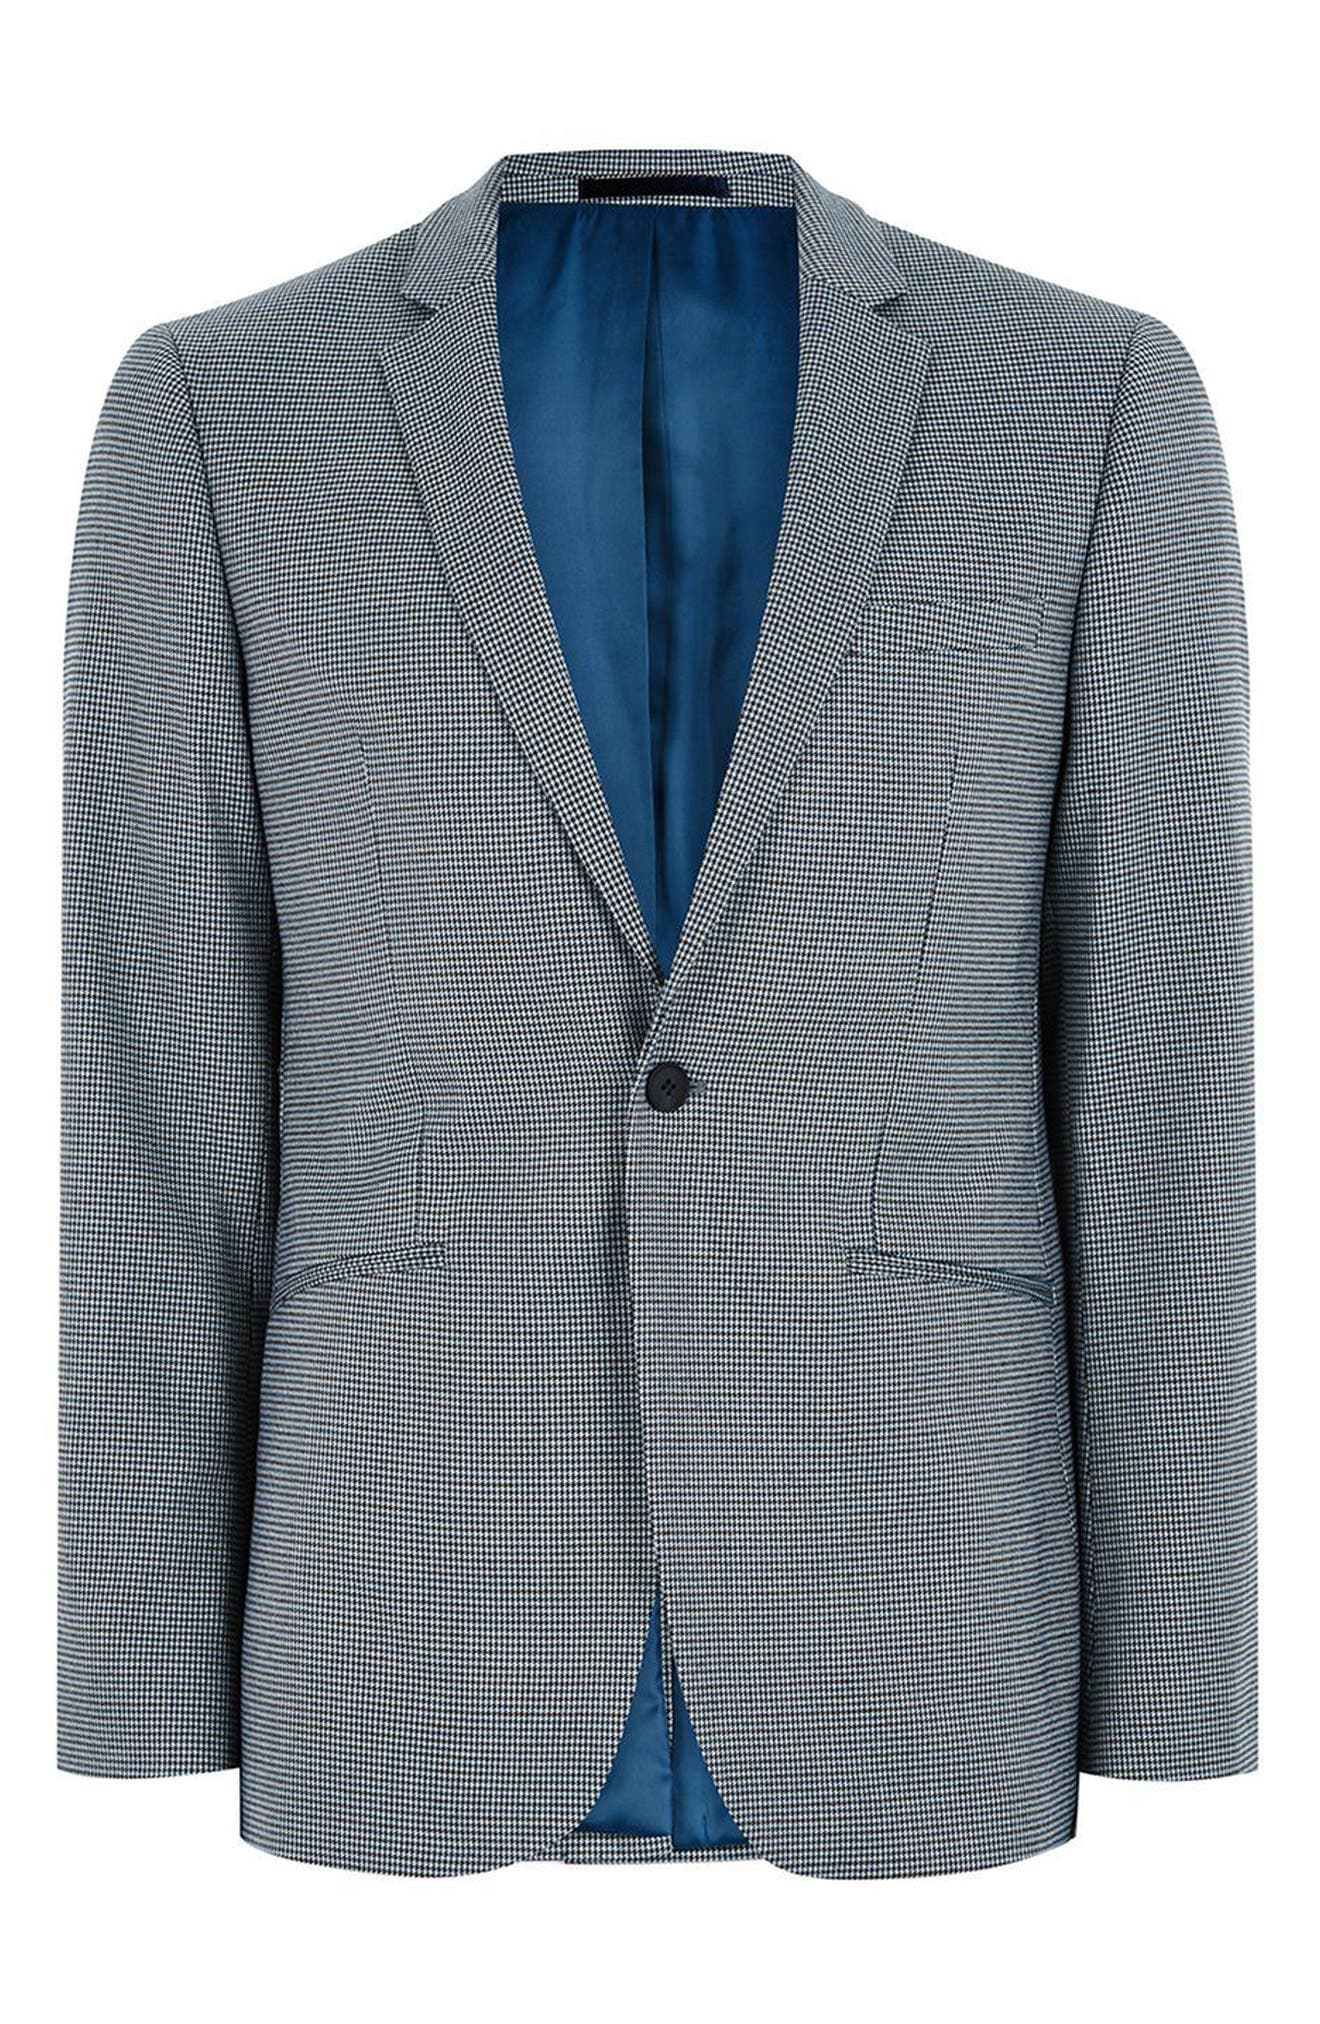 Skinny Fit Houndstooth Suit Jacket,                             Alternate thumbnail 4, color,